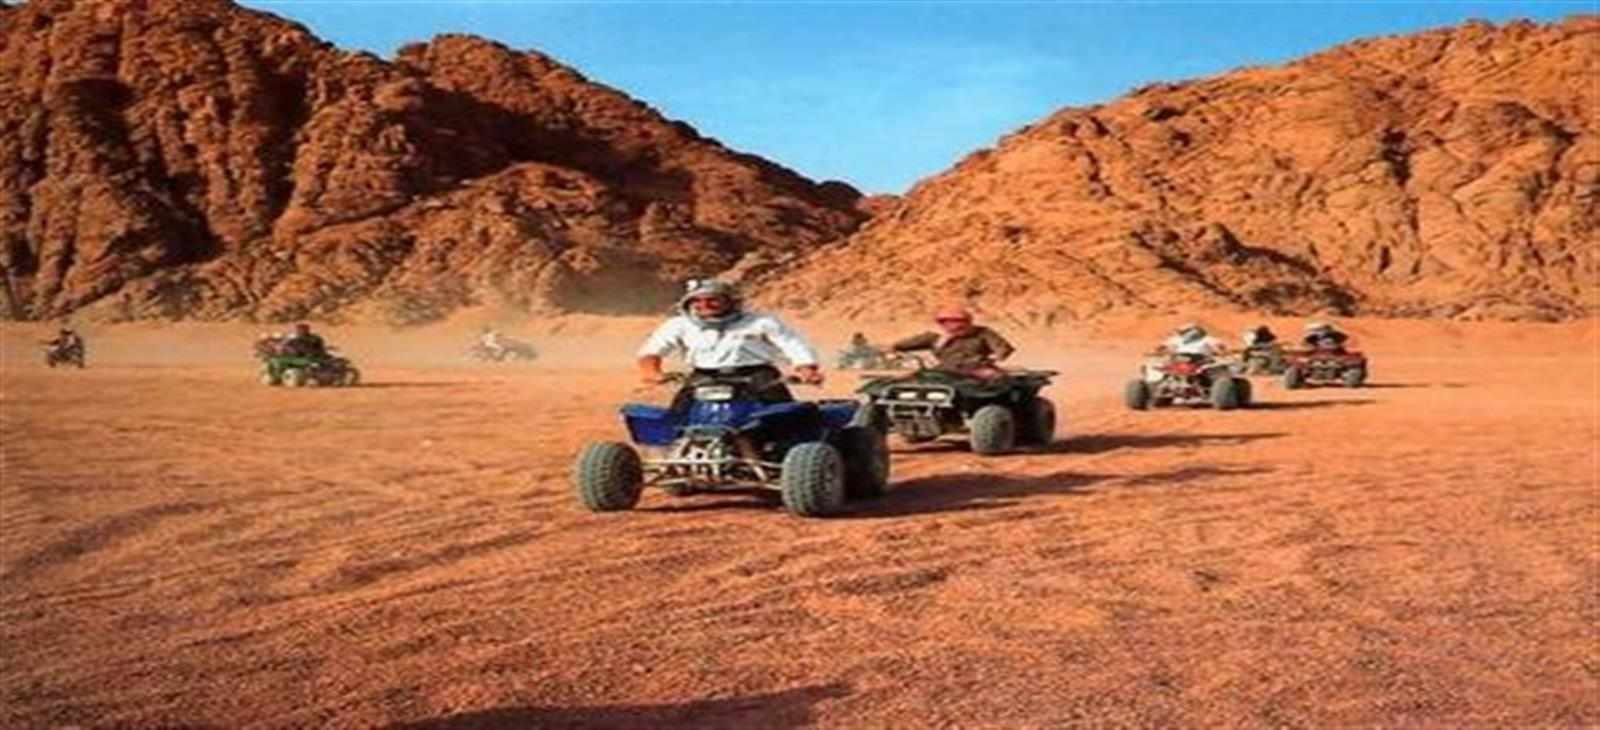 quad bike luxor